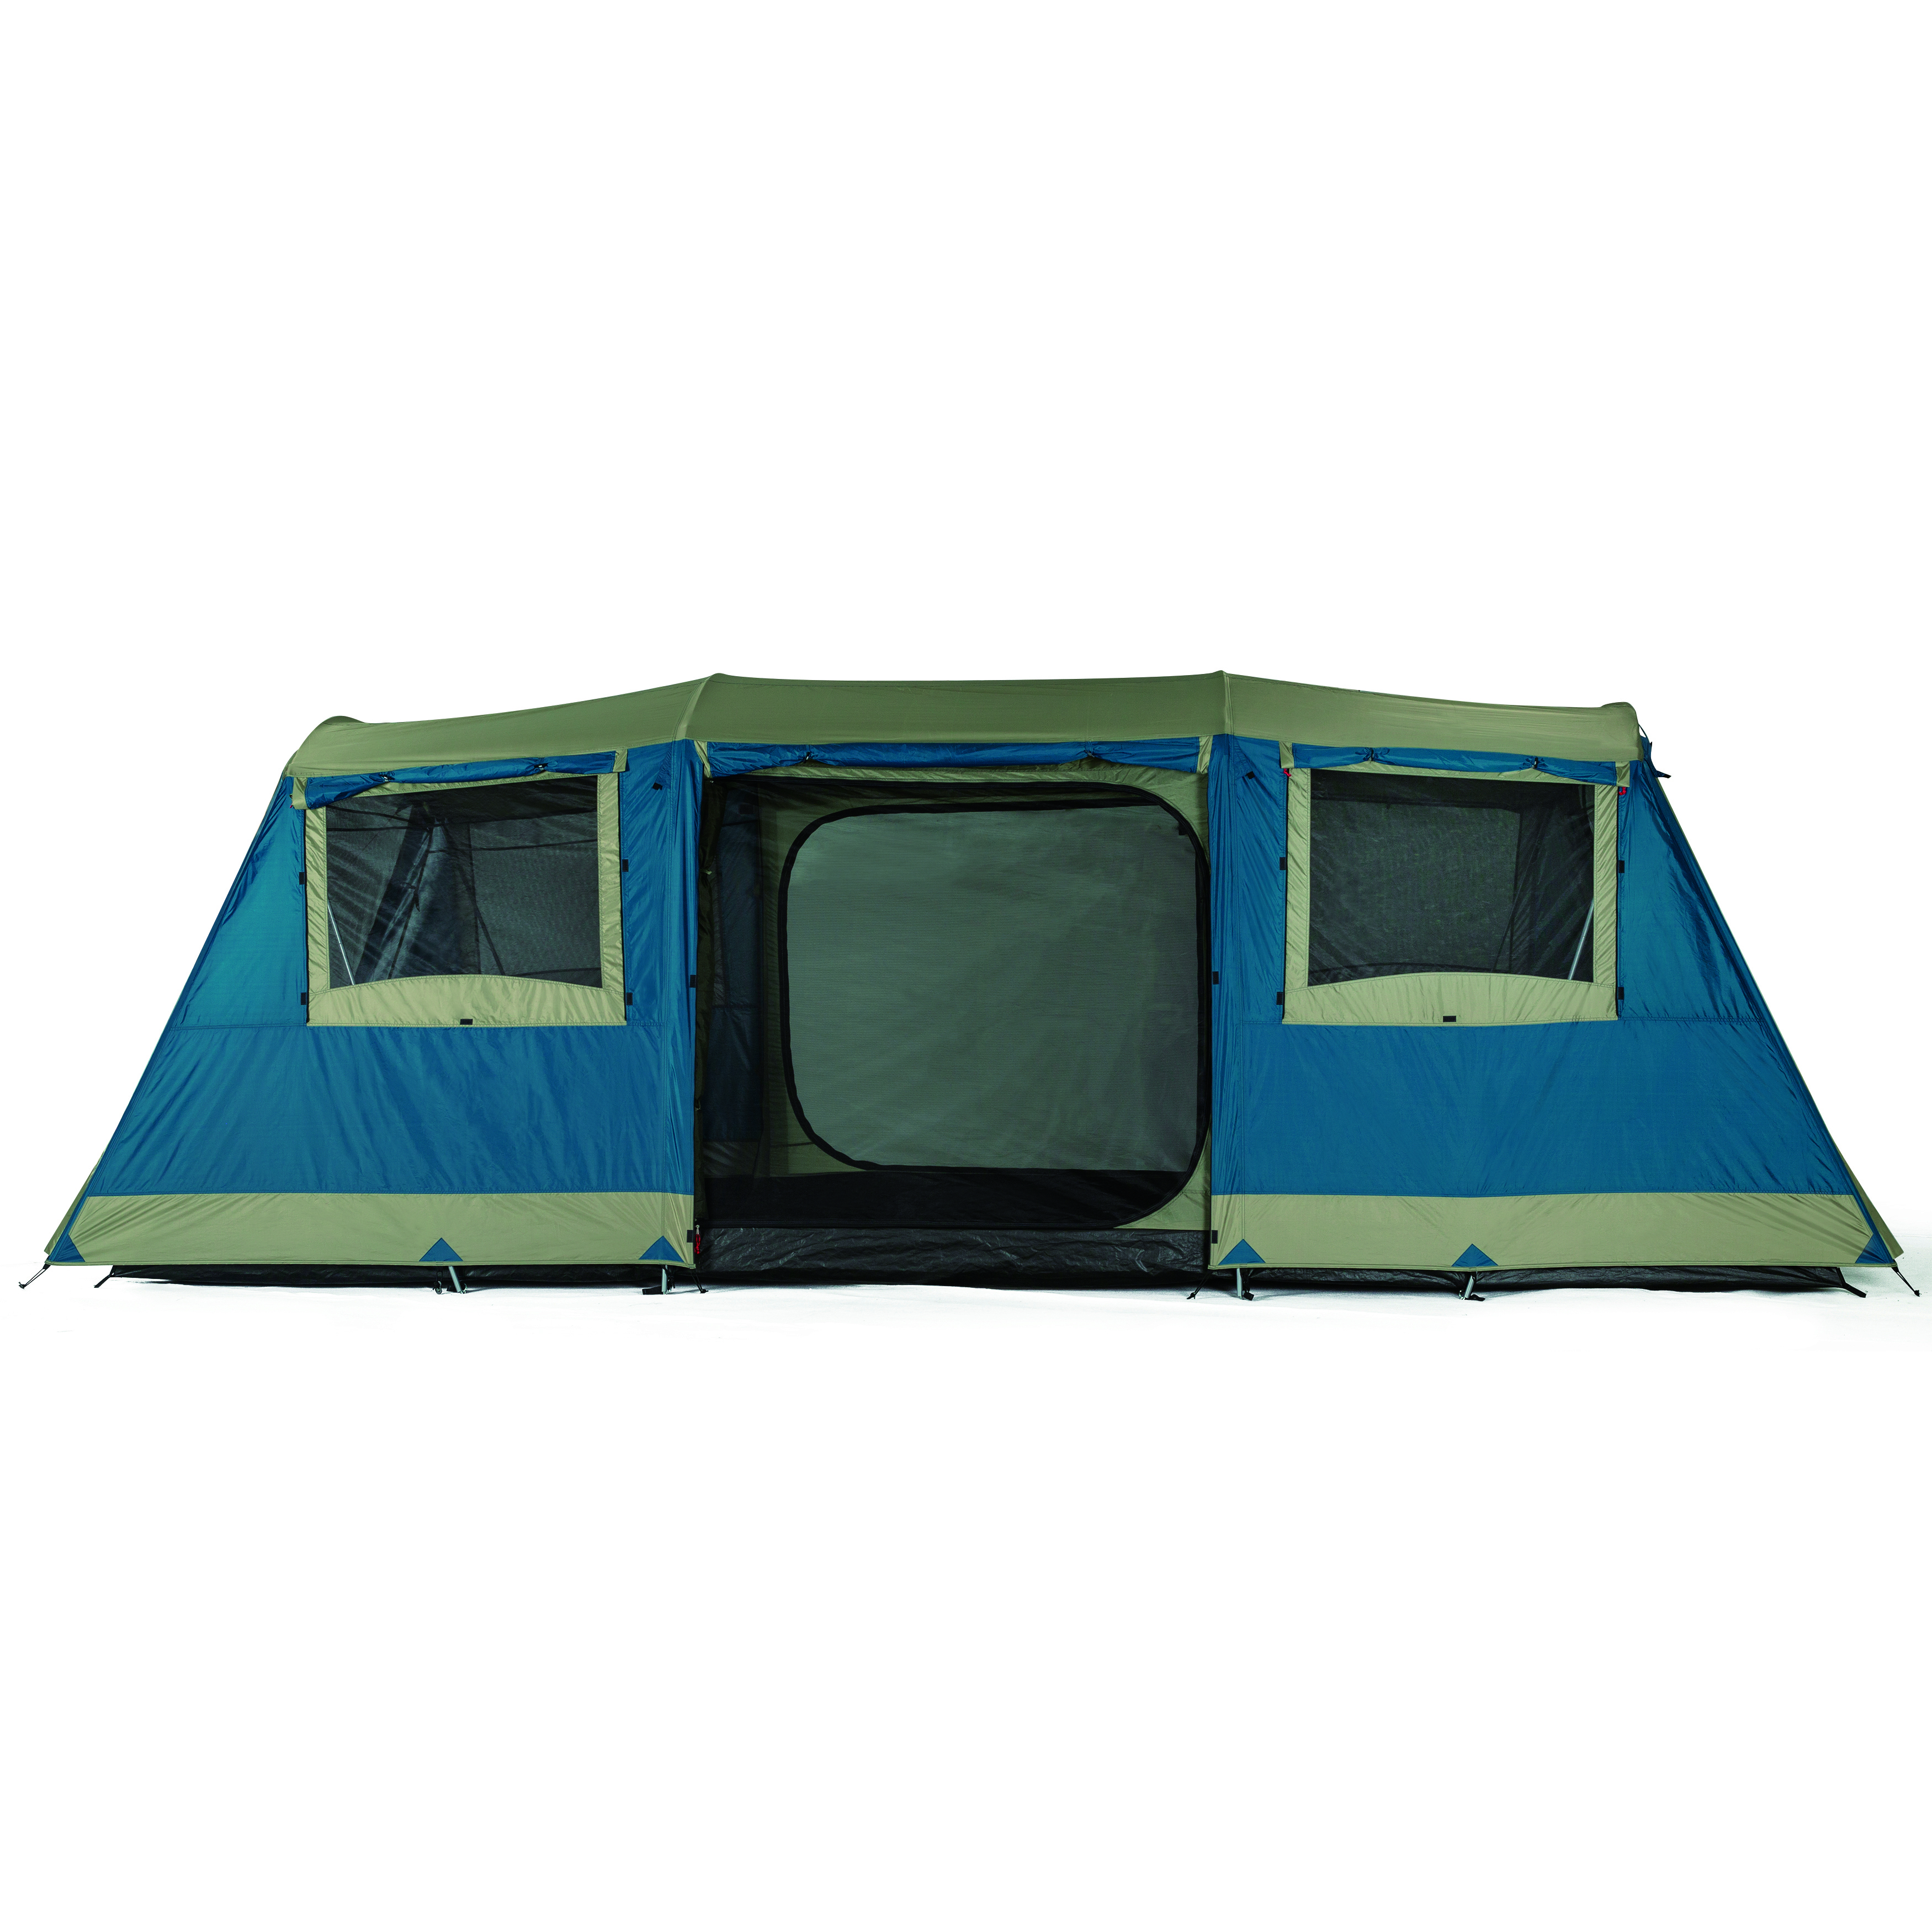 Oztrail Bungalow 9 Dome Tent: OZtrail Bungalow 9 Dome Tent